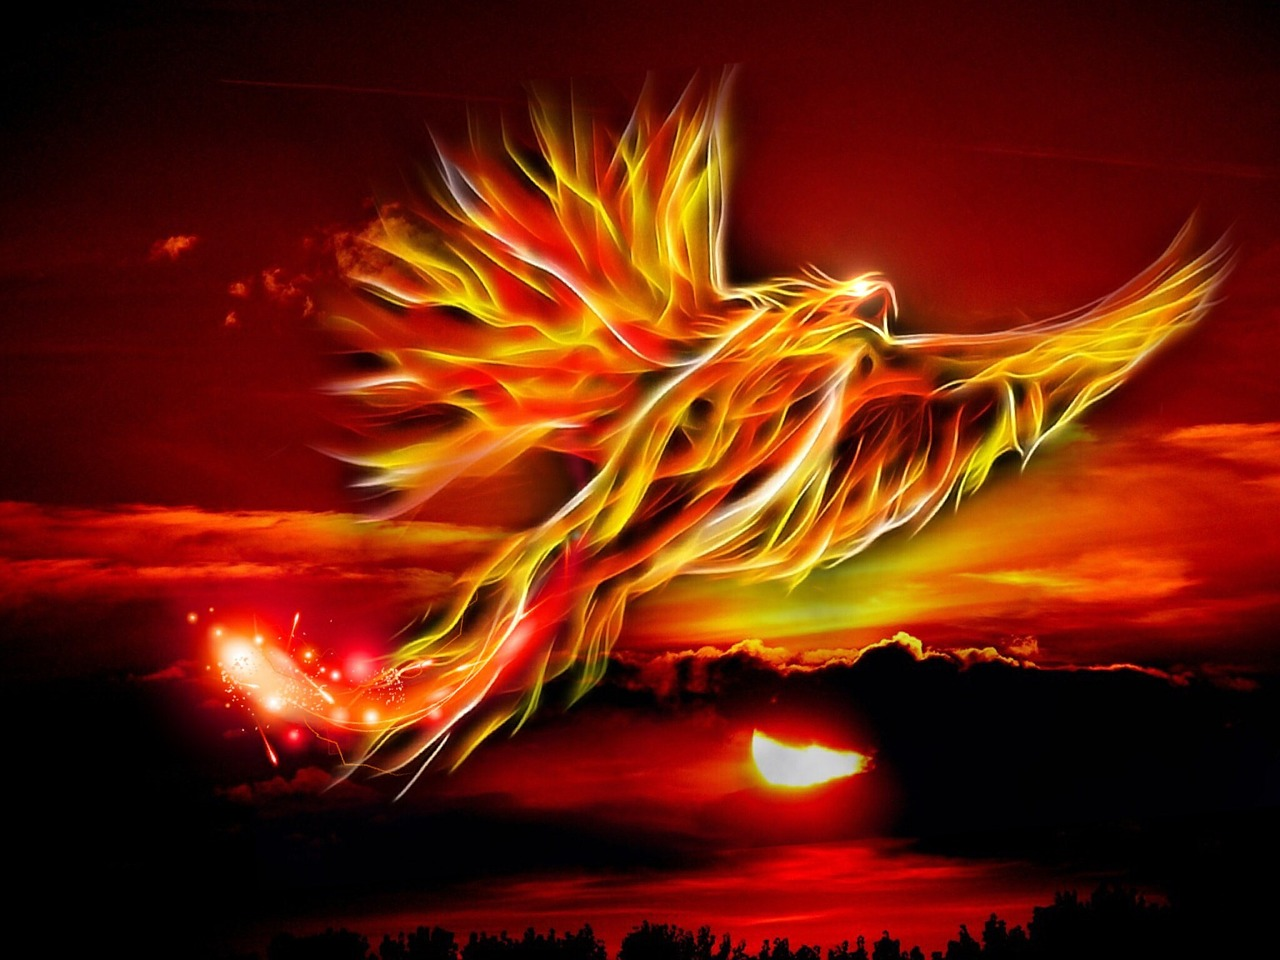 phoenix,bird,fire,sun,bright red,gold,mythical bird,garden of tarot,sky,clouds,wing,swing,mystical,fantastic,sunset,nature,landscape,ash,free pictures, free photos, free images, royalty free, free illustrations, public domain